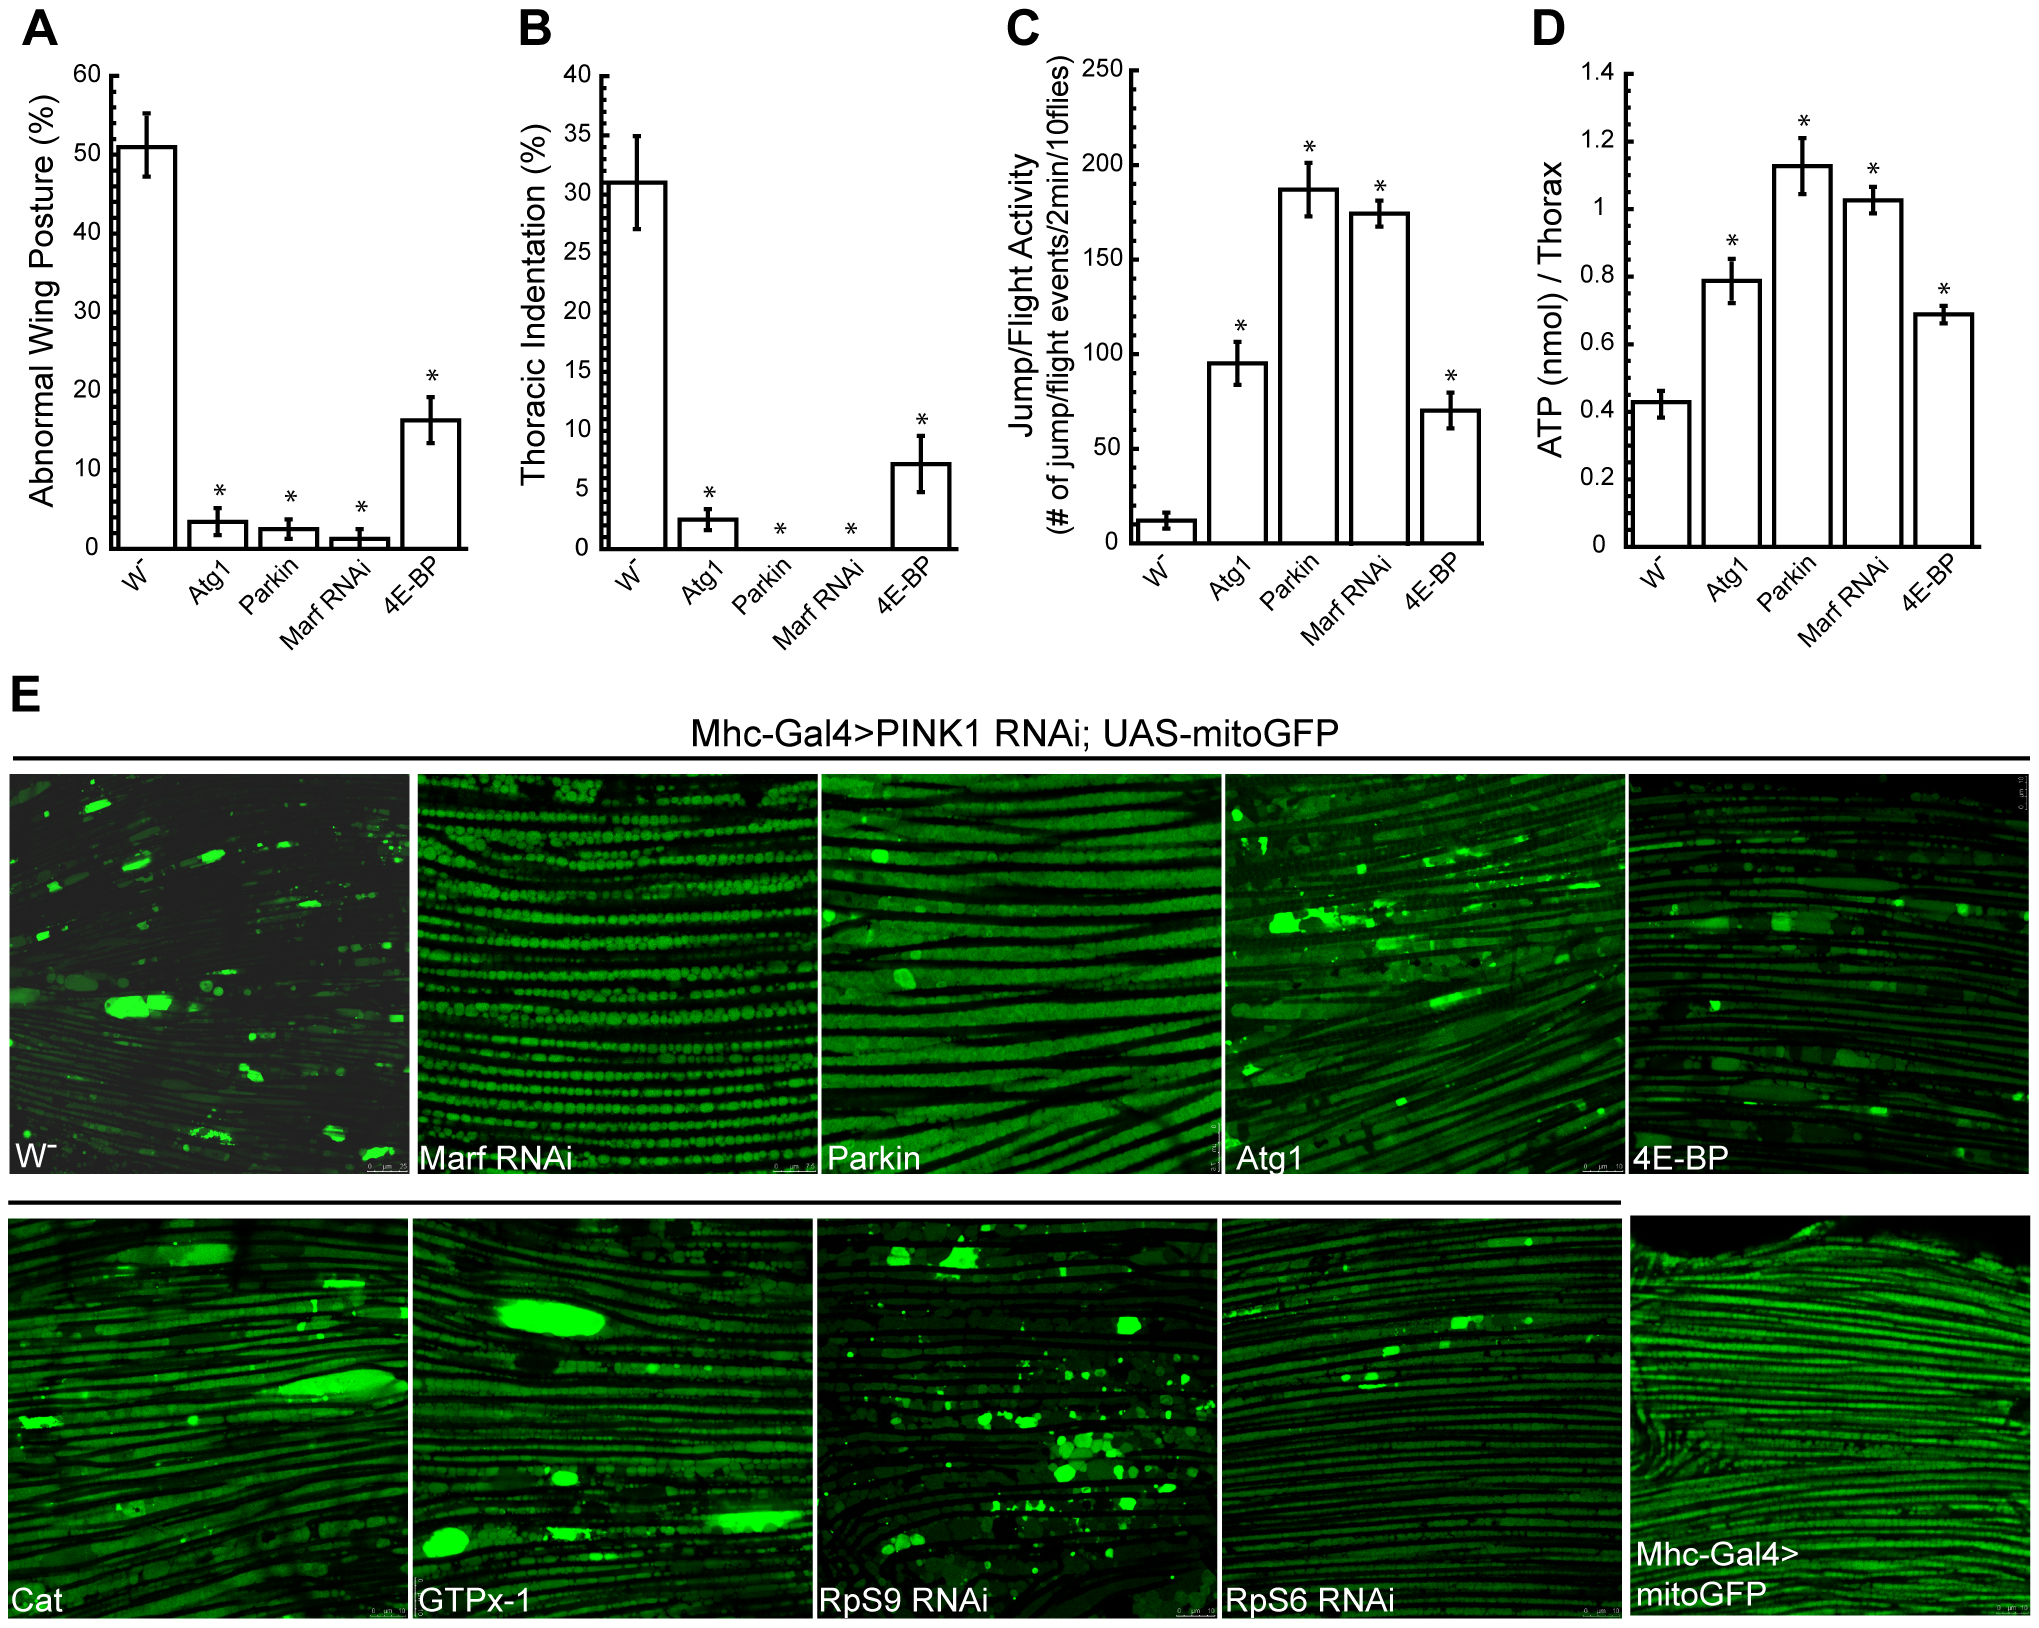 Overexpression of Atg1 rescues <i>PINK1</i> mutant phenotypes.